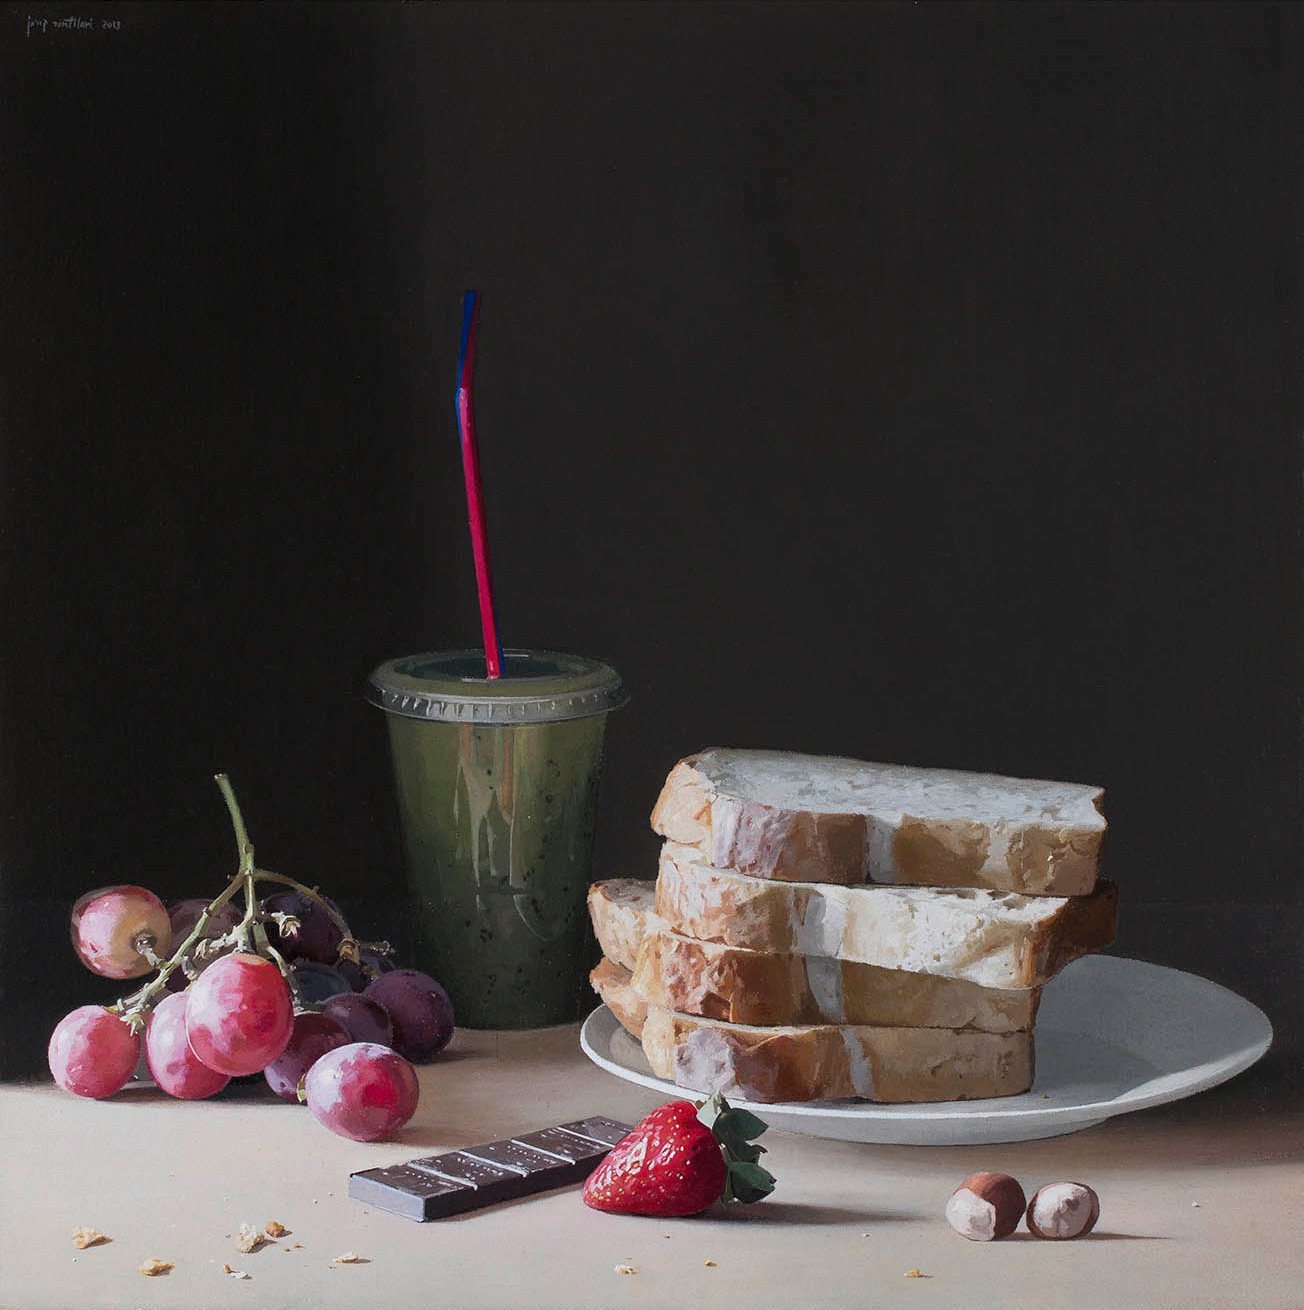 Still life with grapes, chocolate, bread and kiwi juice, Josep Santilari